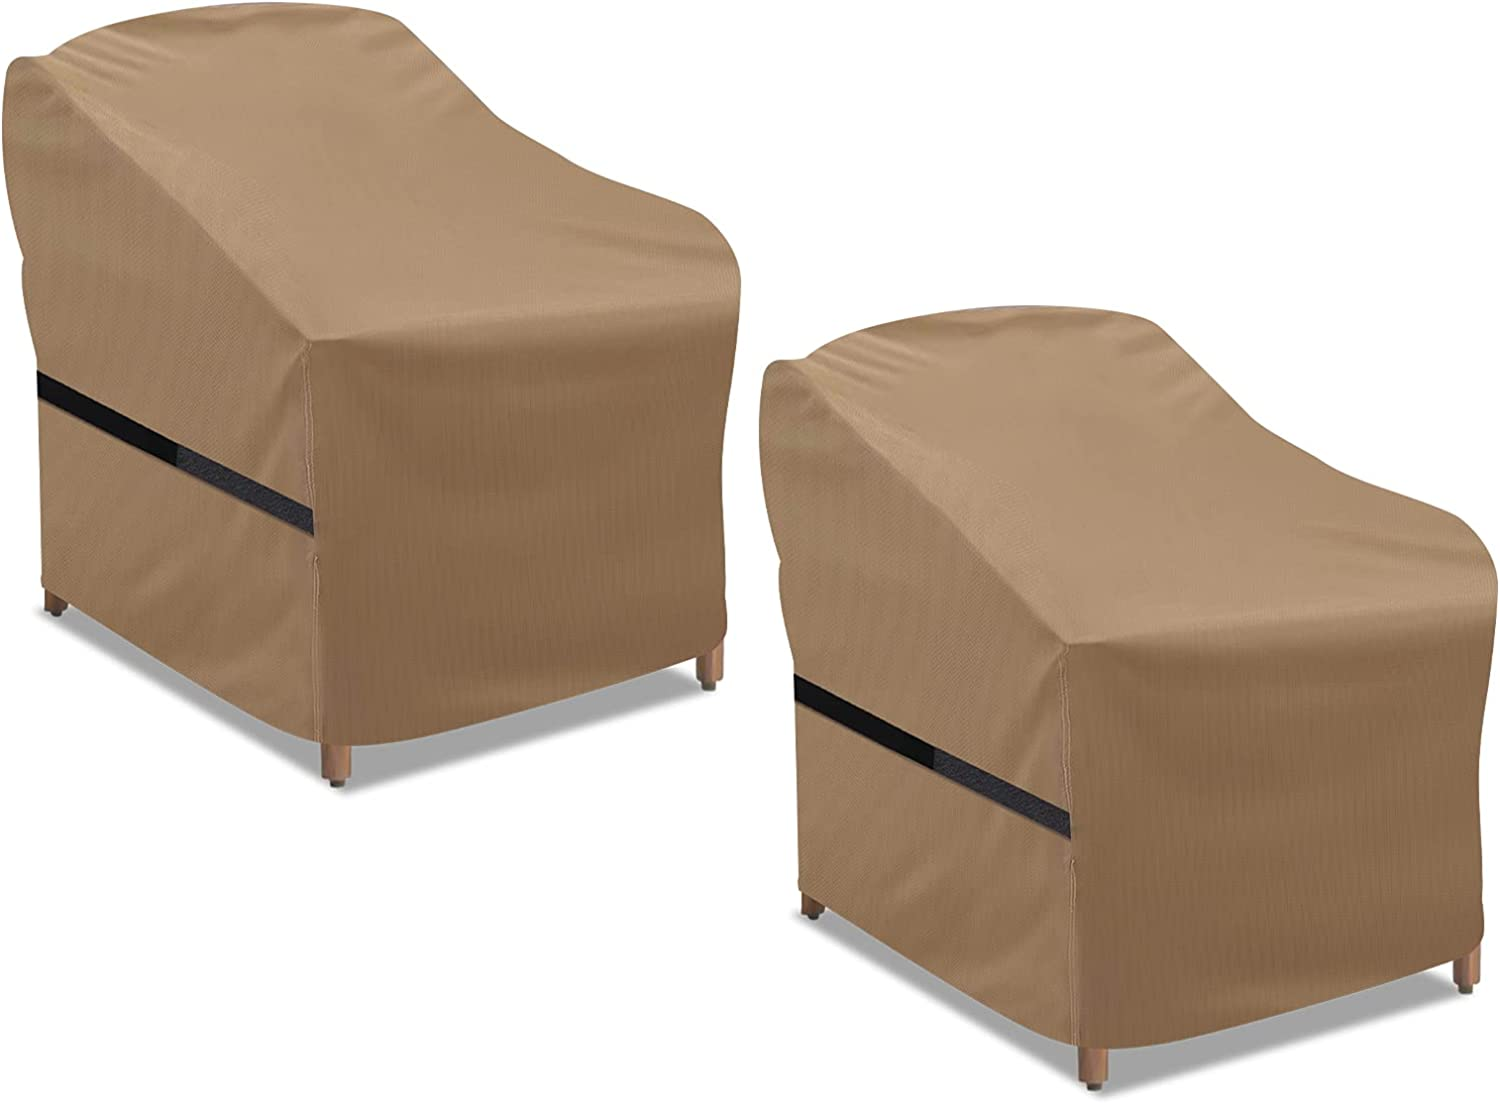 NASUM Patio Chair Covers, 2 Pack Lounge Deep Outdoor Seat Cover, 38''Lx31''Dx29''H, 600D Waterproof and Heavy Duty Outdoor Furniture Covers, Beige